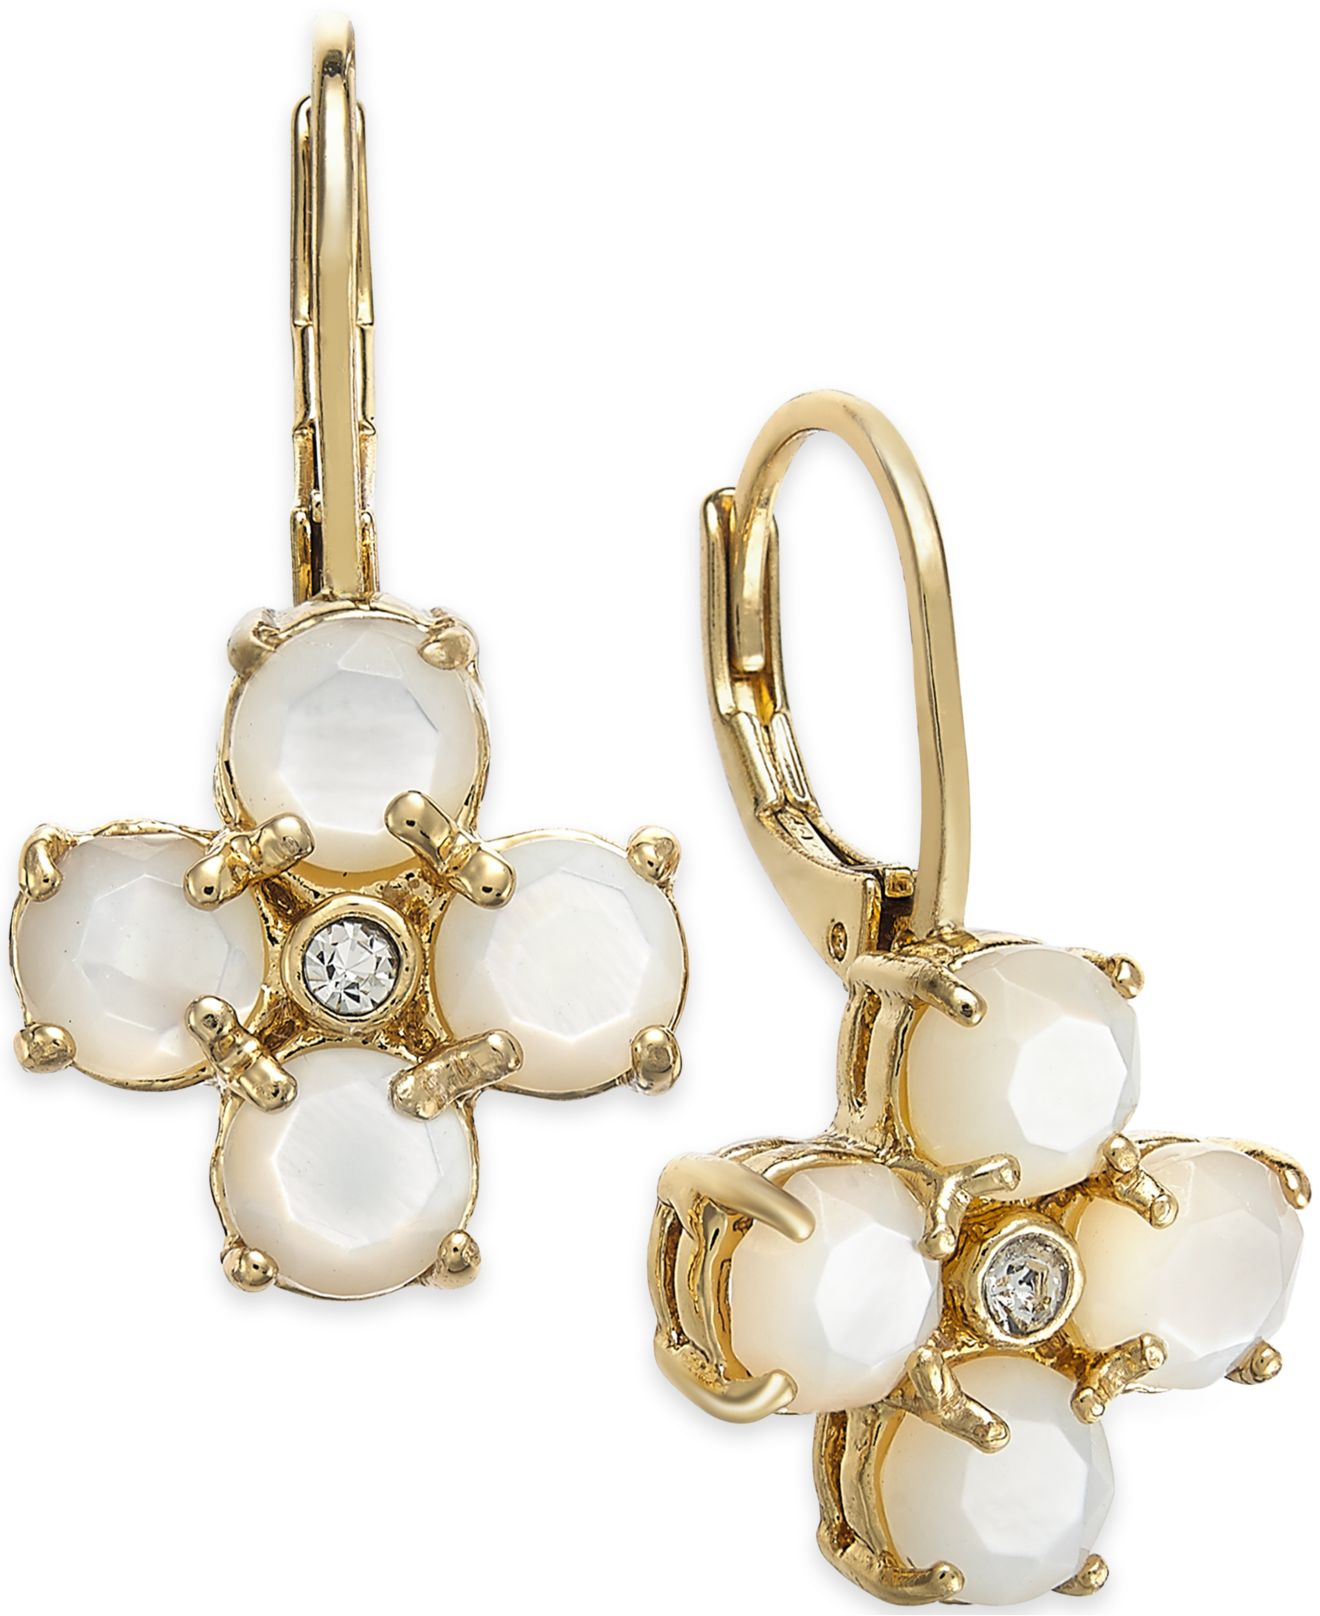 Spade Jewelry: Kate Spade New York 14k Gold-plated Mother-of-pearl